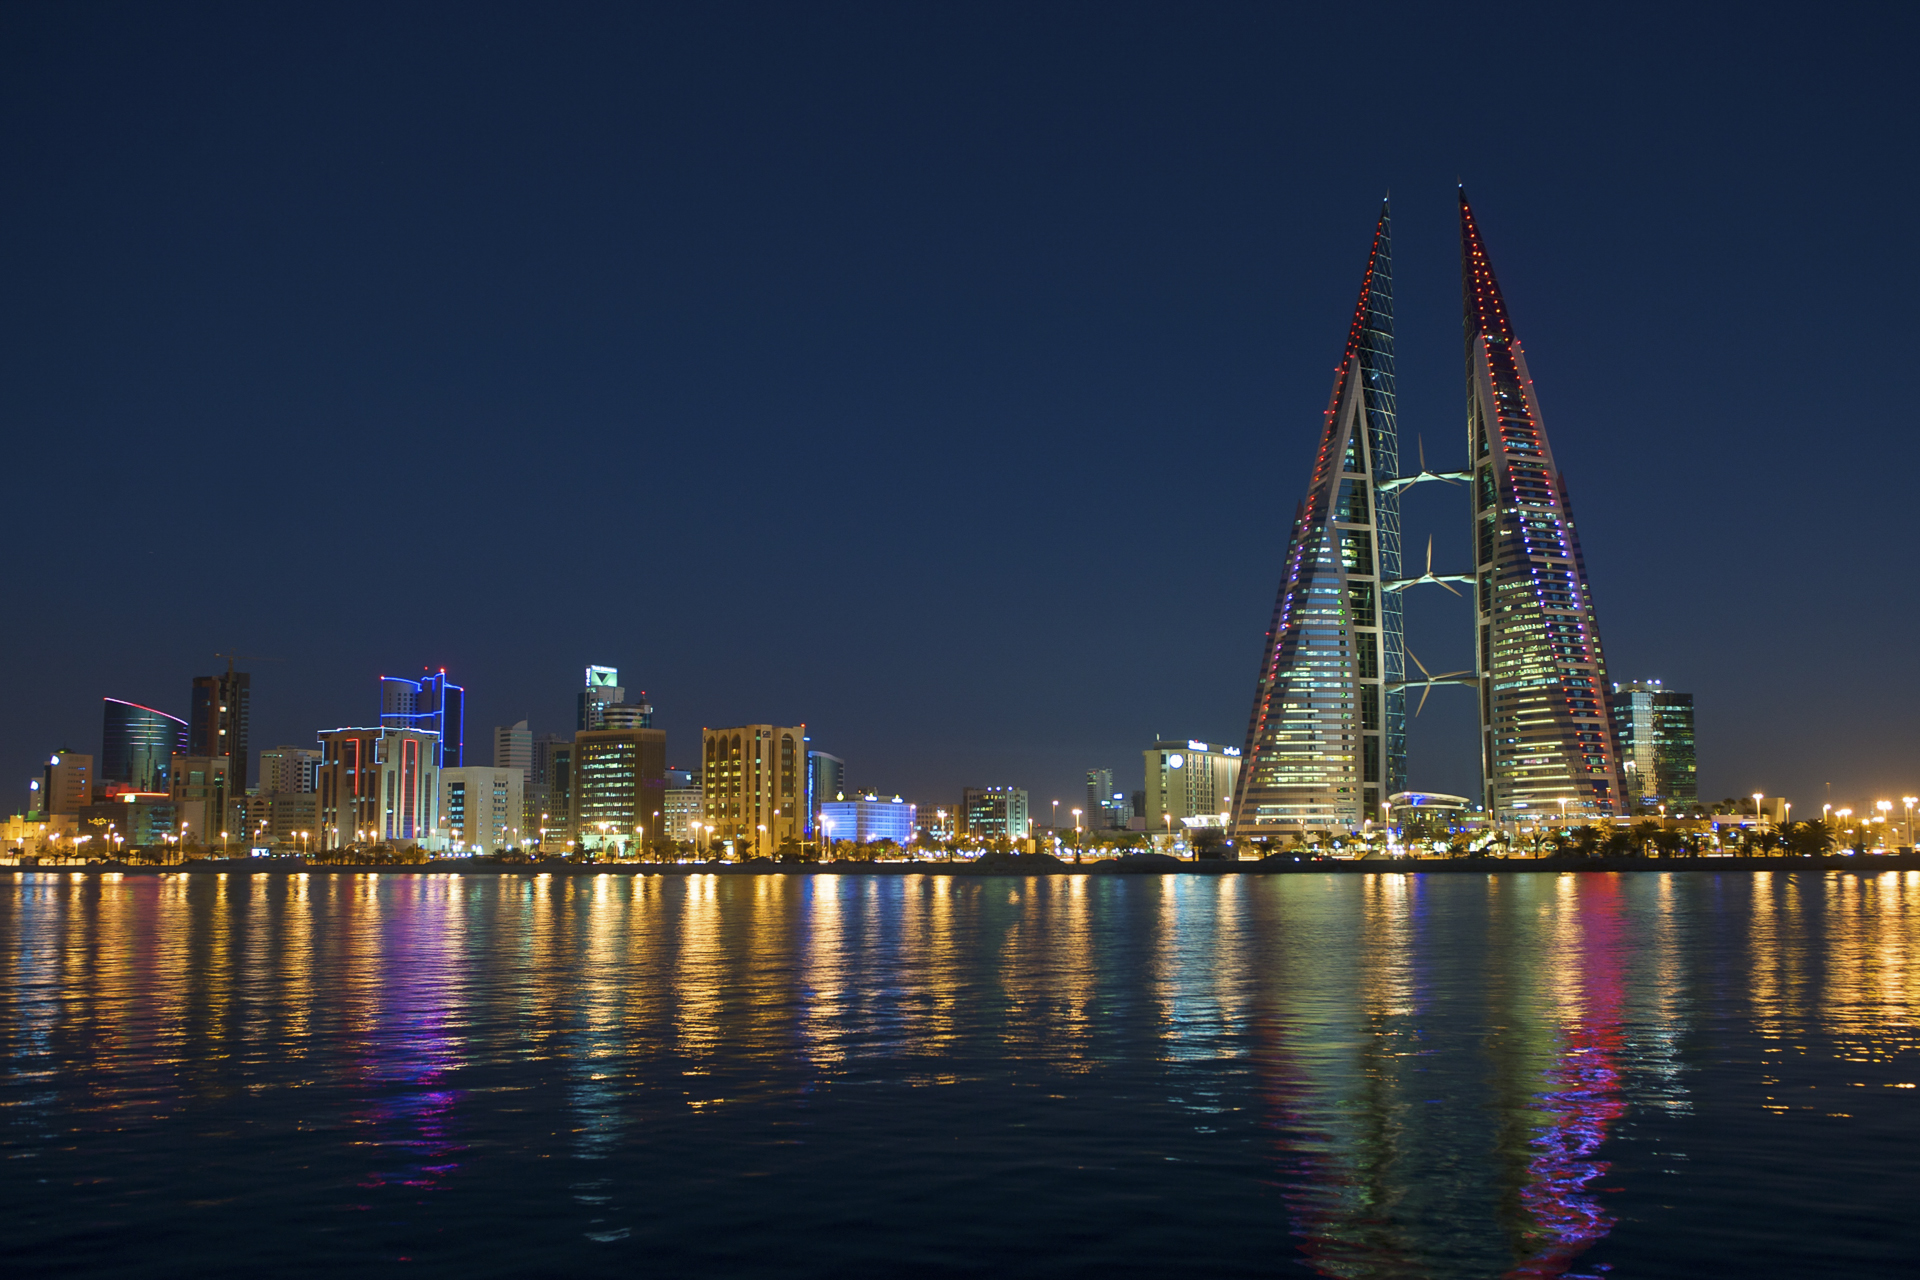 Facade Lighting Fixtures on the Bahrain World Trade Centre | Pulsar